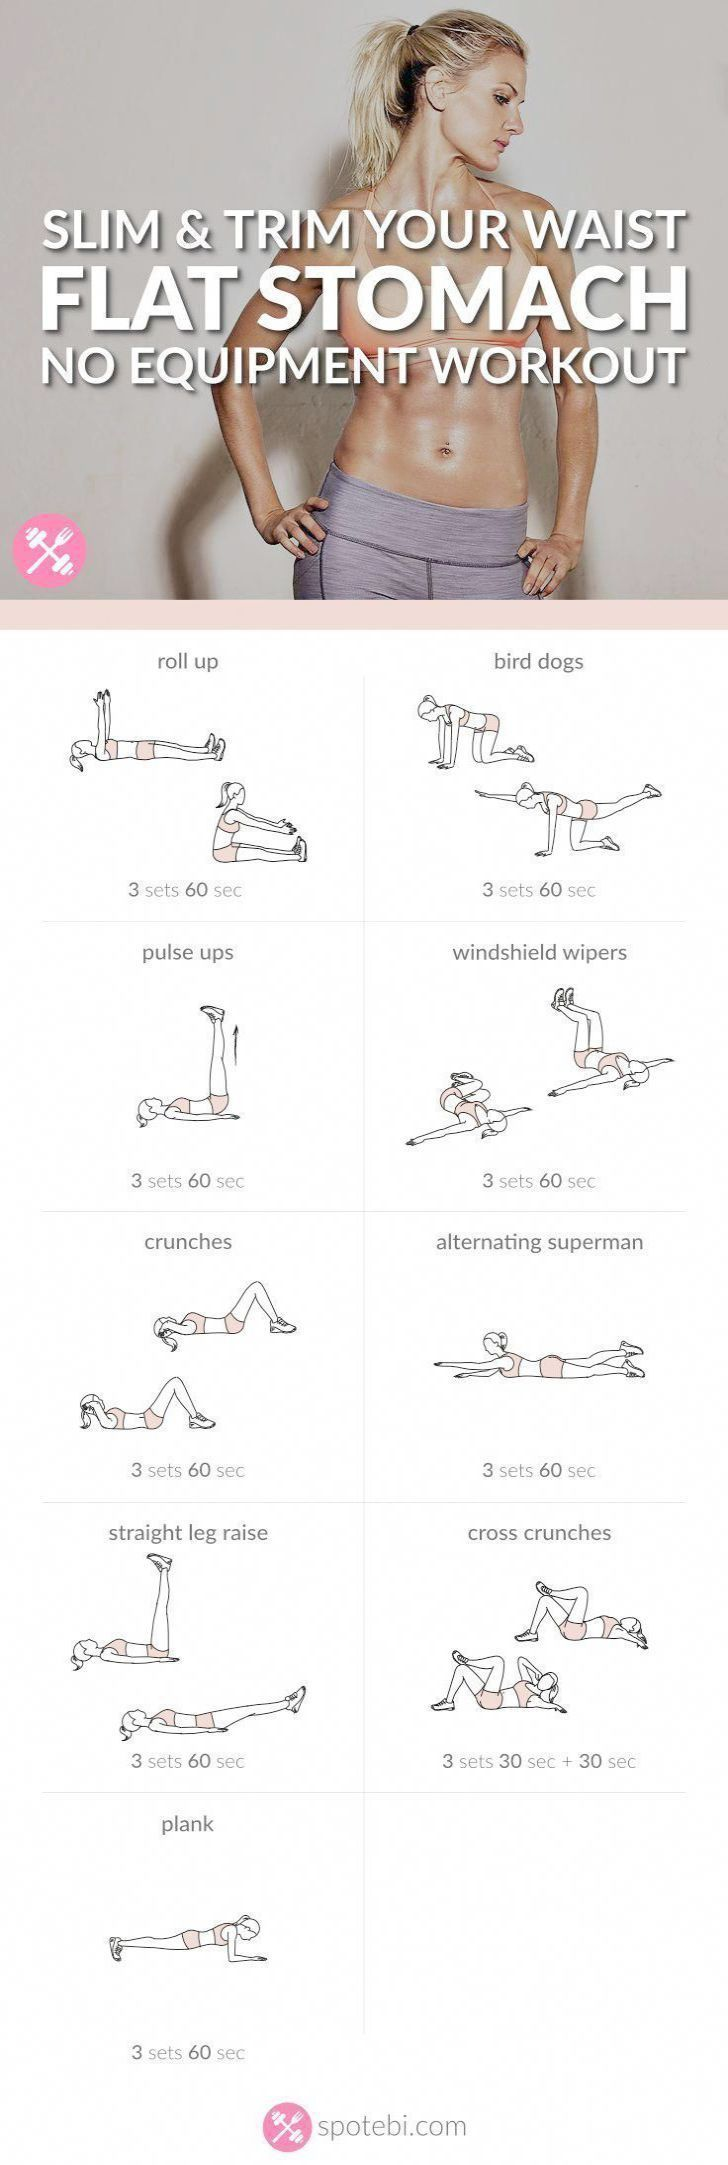 Ab Core Workout Machine his Abdominal Exercises Rectus Diastasis within Best Ab Exercises Jeff Nippard #abexercisemachine Ab Core Workout Machine his Abdominal Exercises Rectus Diastasis within Best Ab Exercises Jeff Nippard #abexercisemachine